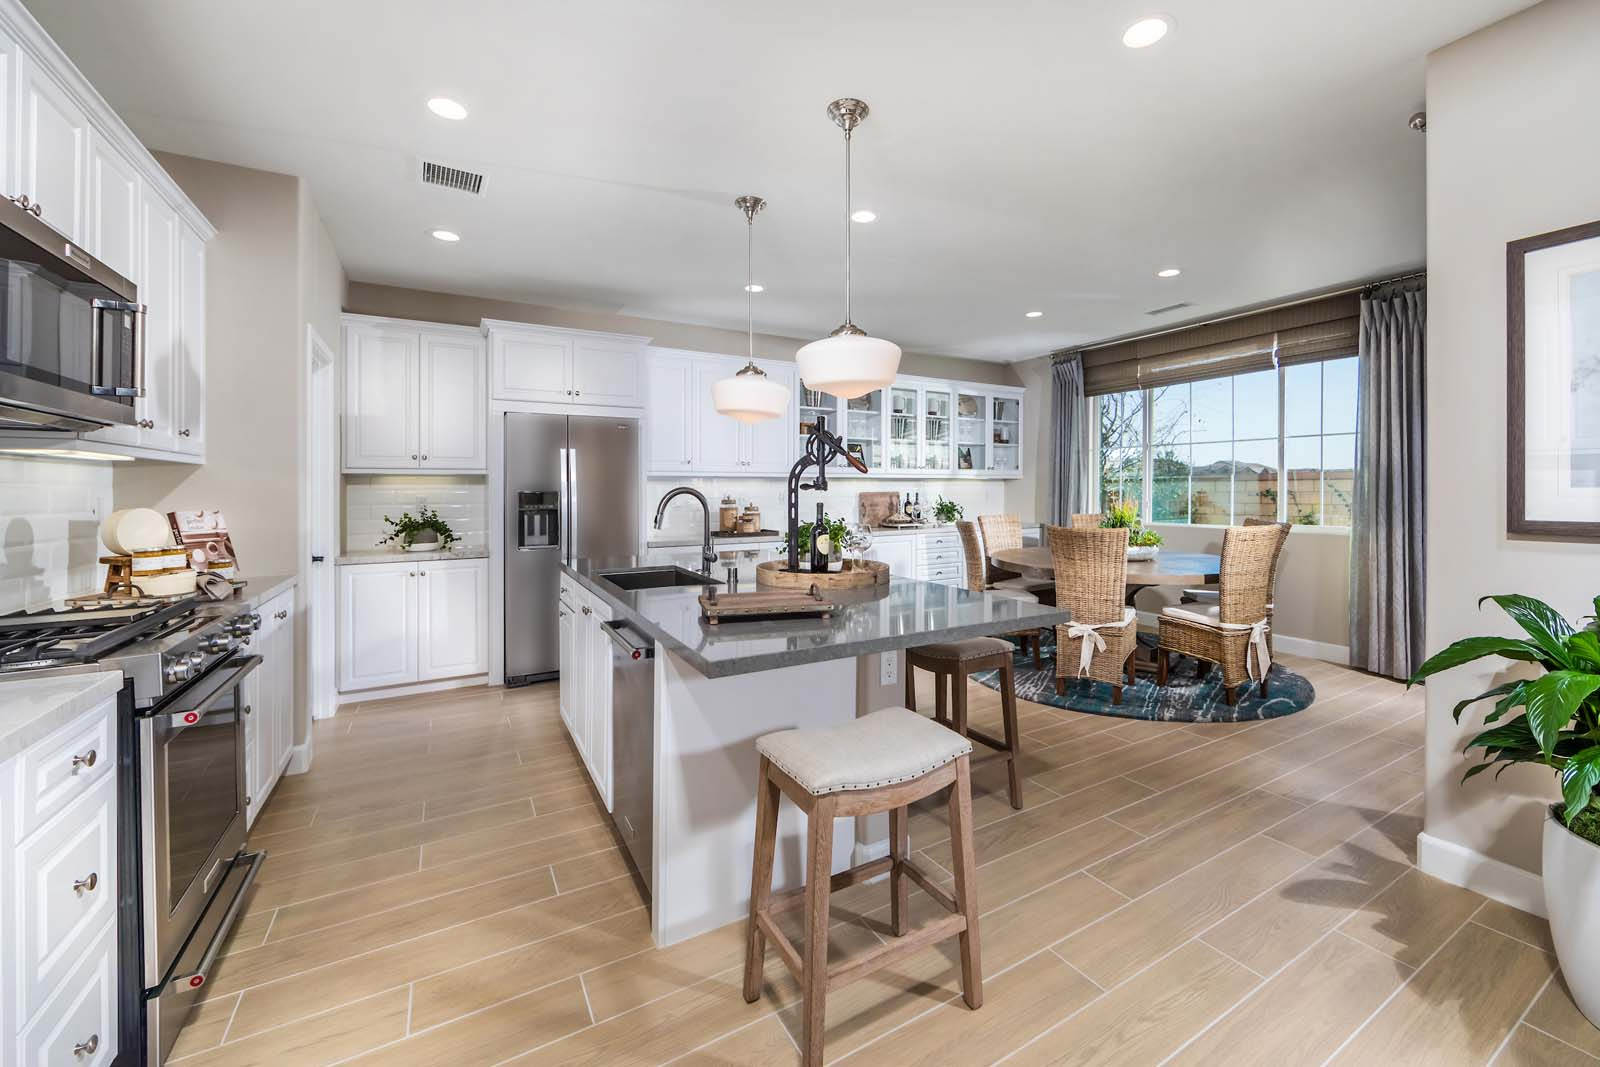 Kitchen Dining Room Residence 3 | Marigold at New Haven in Ontario Ranch, CA | Brookfield Residential